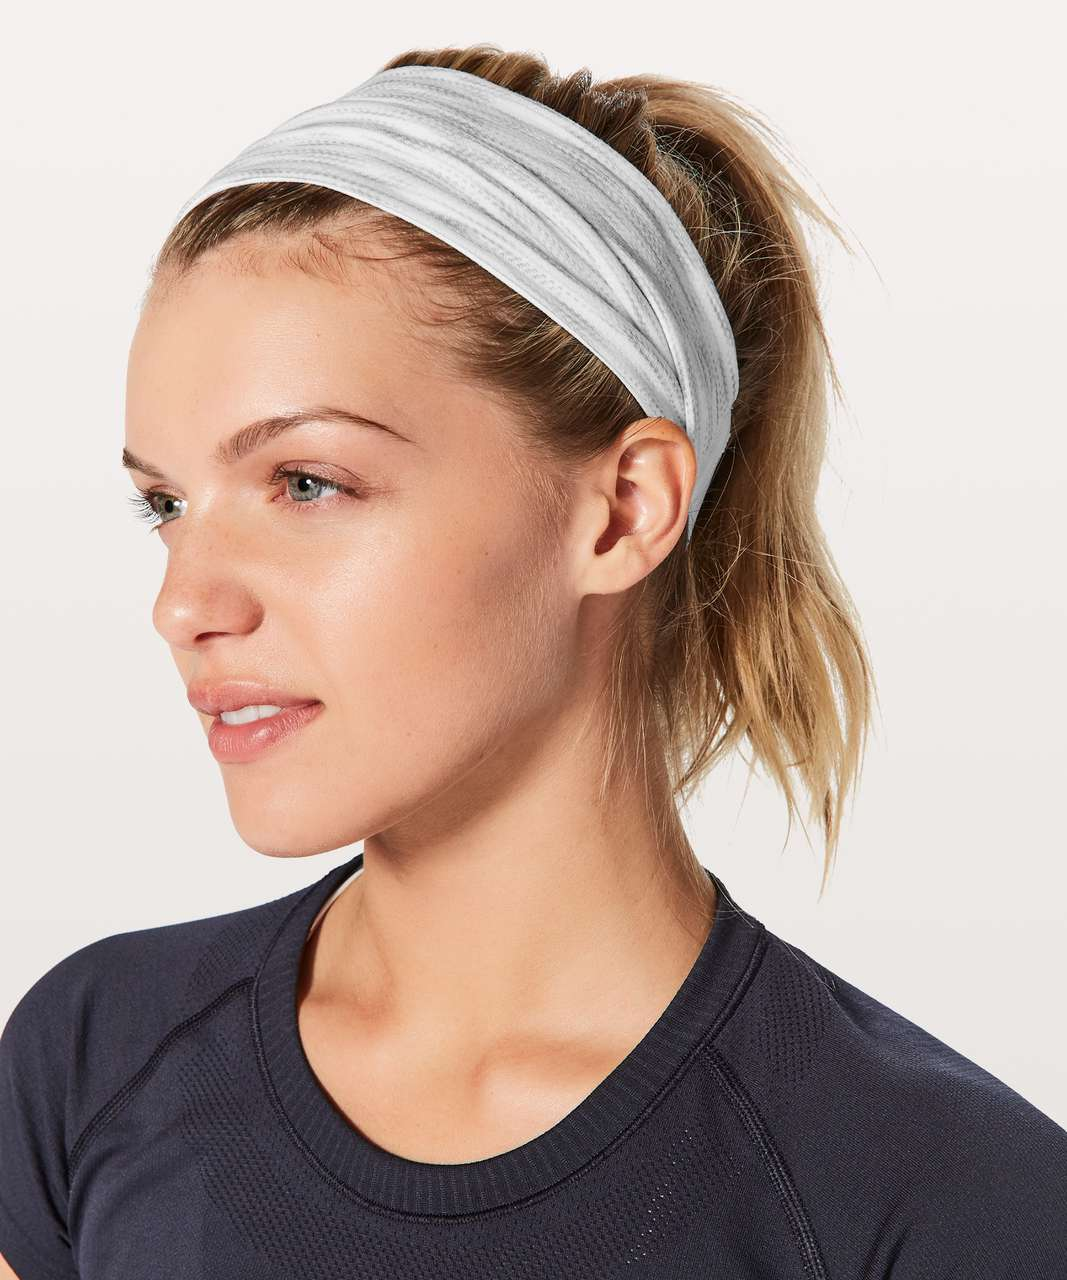 ba7bbd7c9cb Lululemon Fringe Fighter Headband - White / Tiger Space Dye Hail White -  lulu fanatics